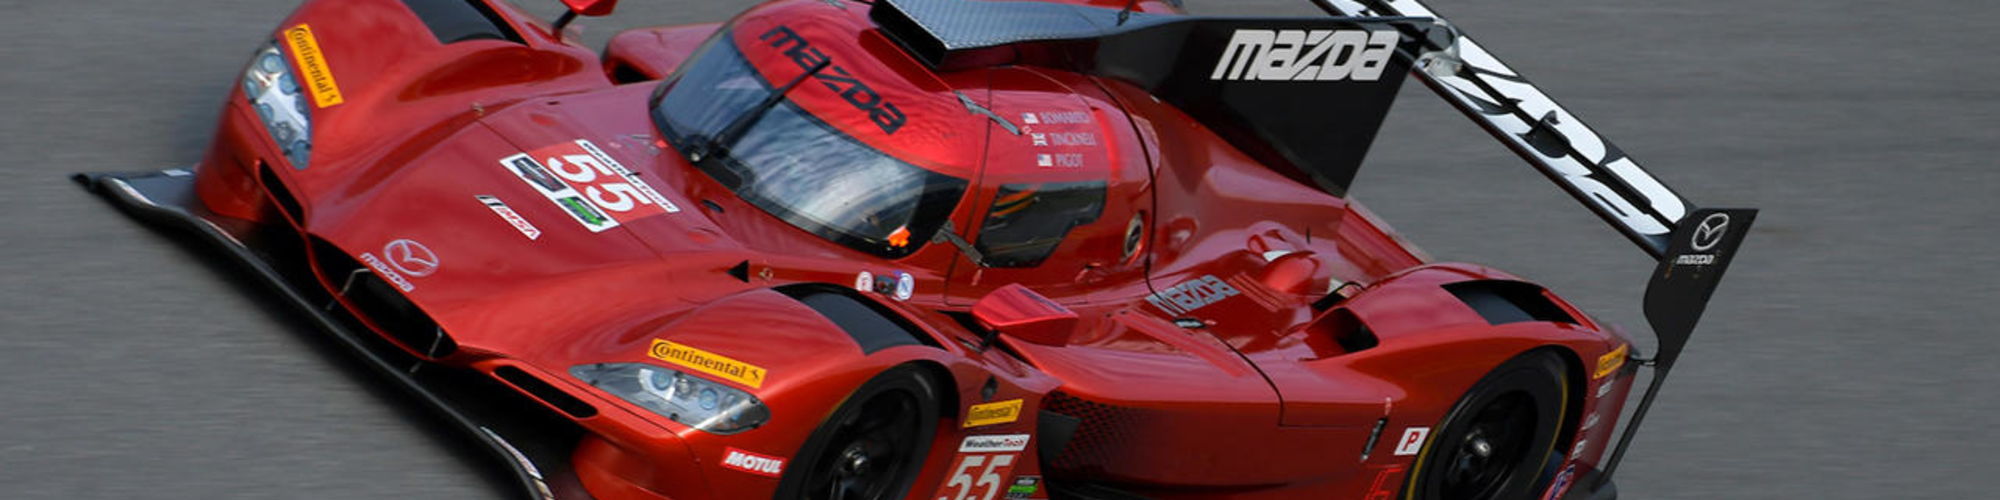 Joest Racing cover image